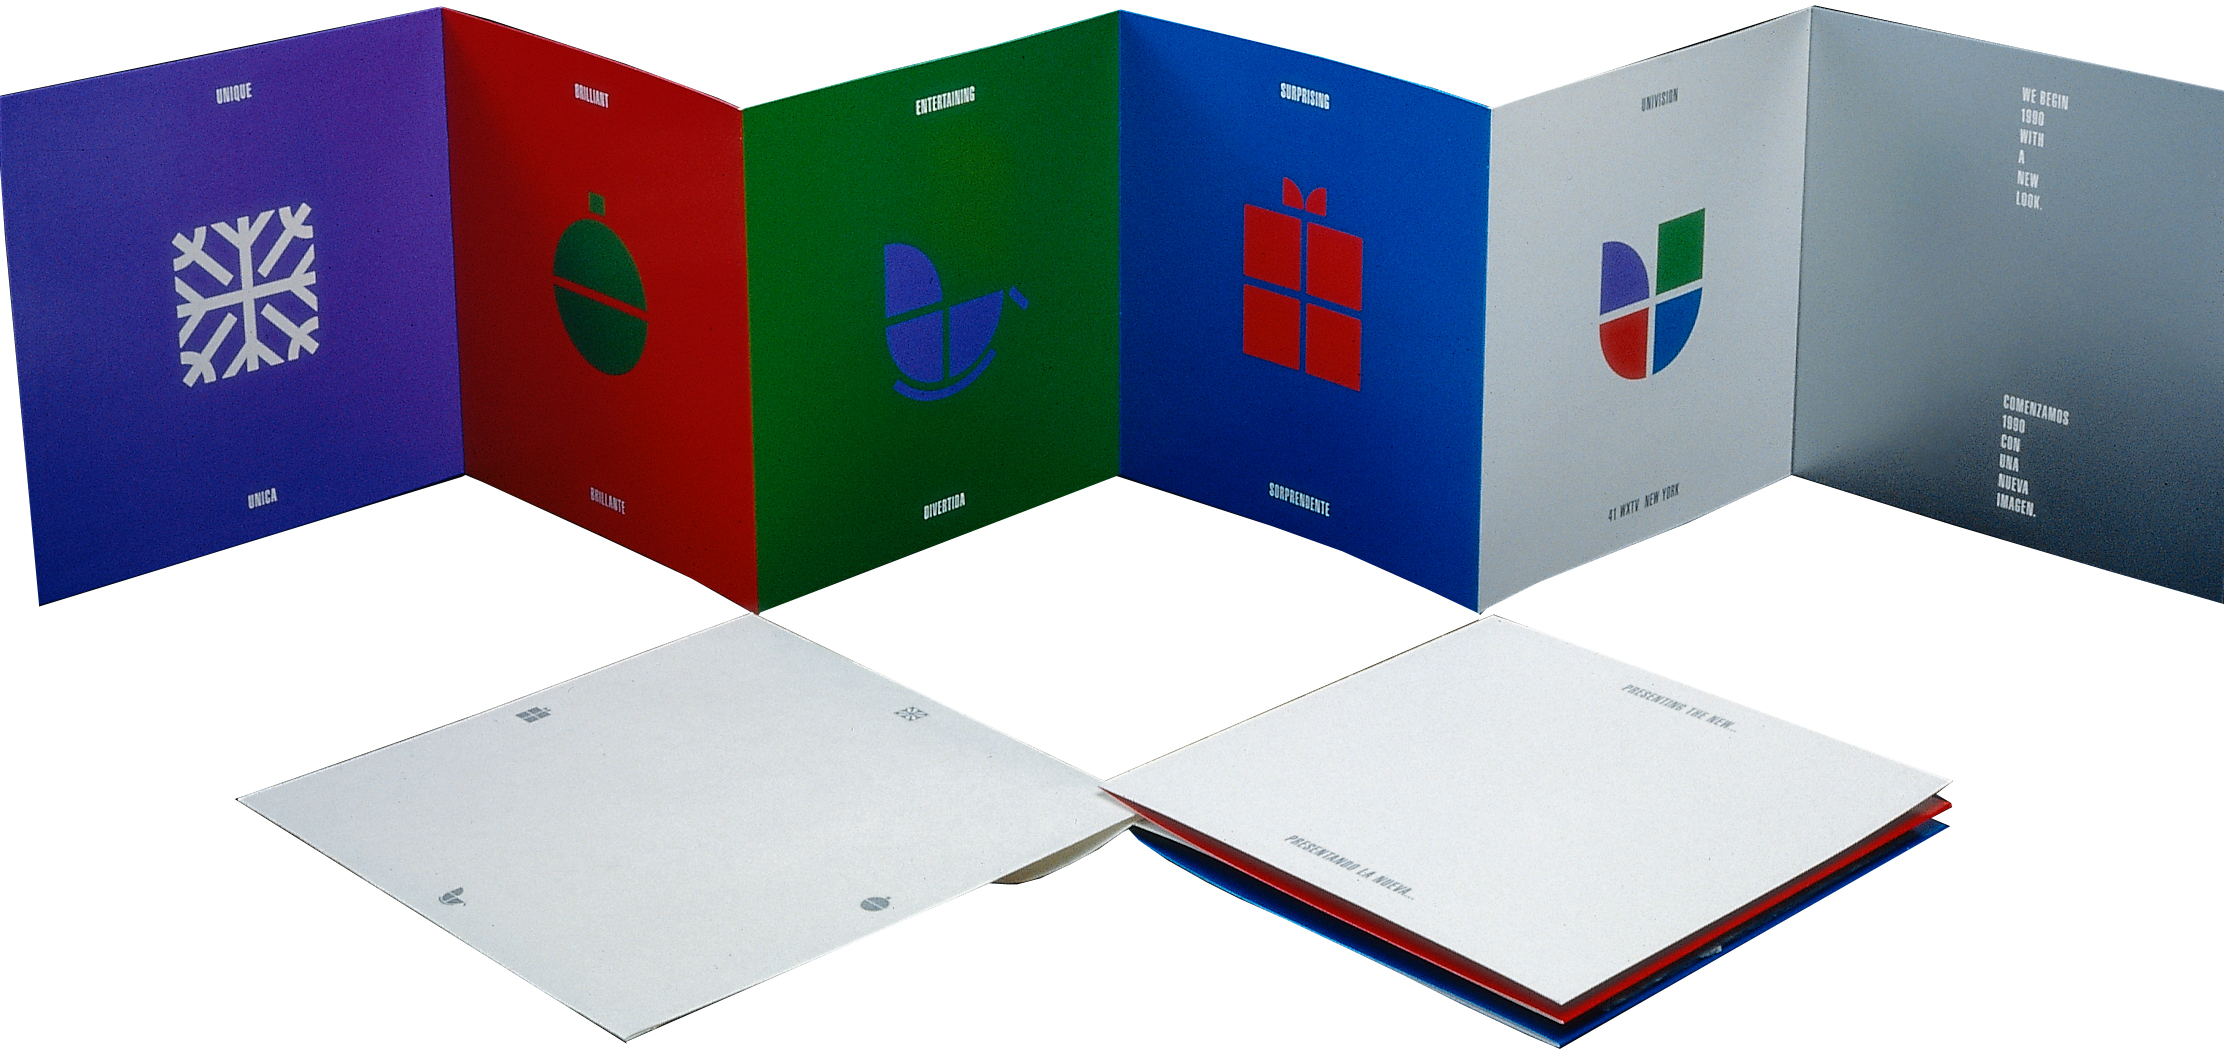 Project image 1 for Identity and Sales Collateral, Univision